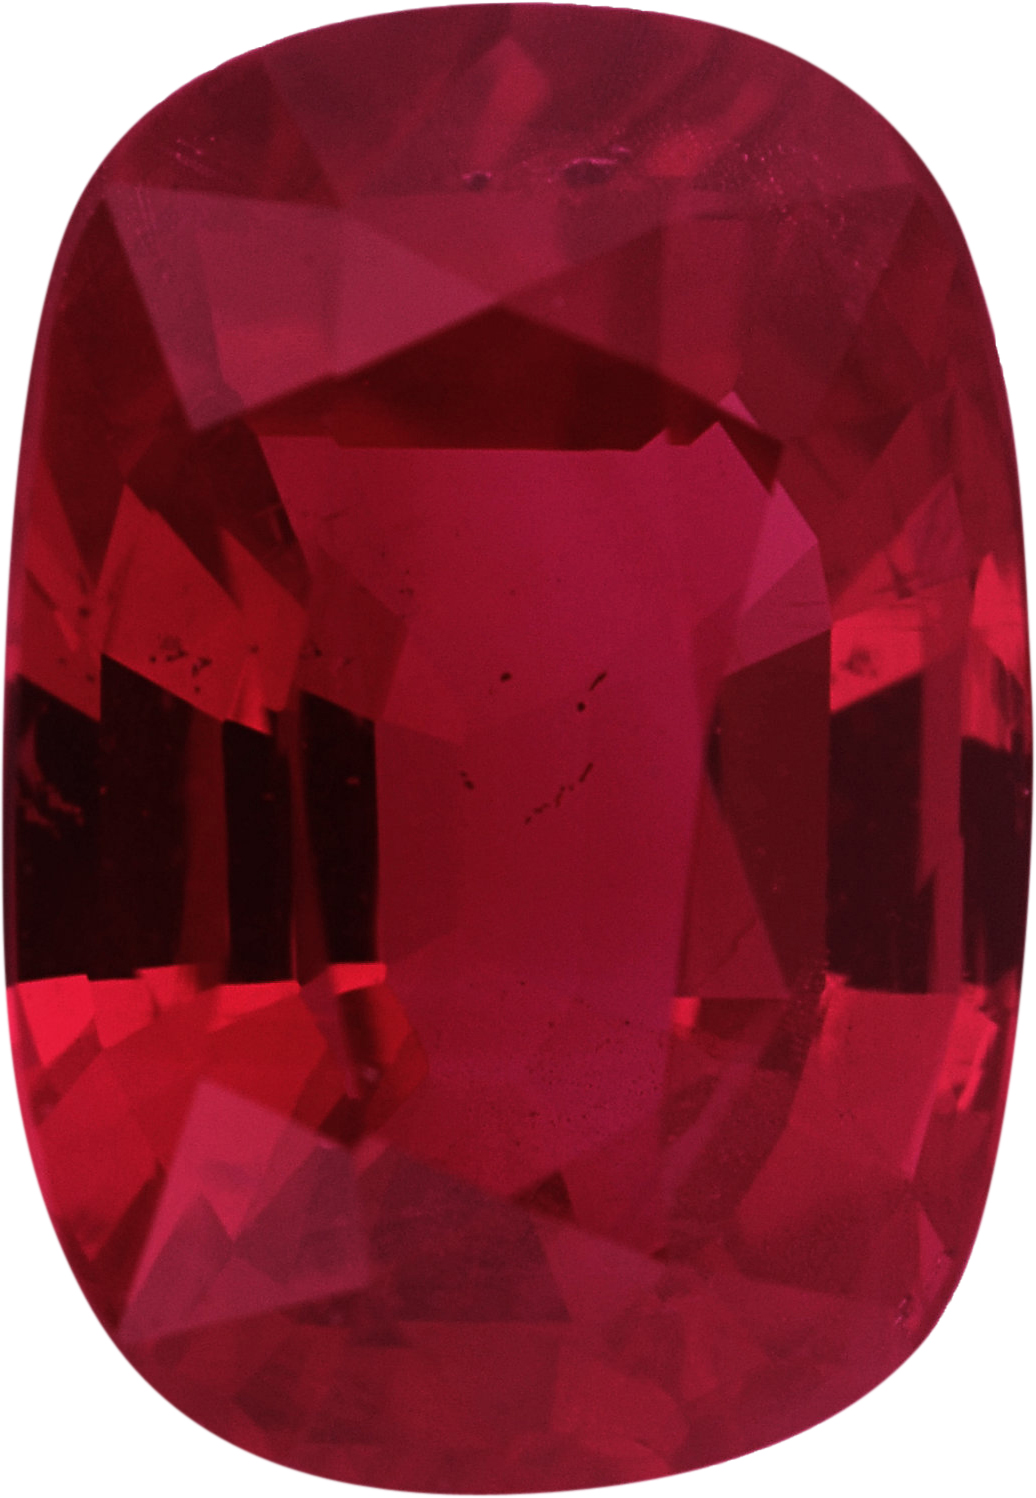 1.94 carats Ruby Loose Gemstone in Antique Cushion Cut, Orangy Red, 8.03 x 5.63 mm